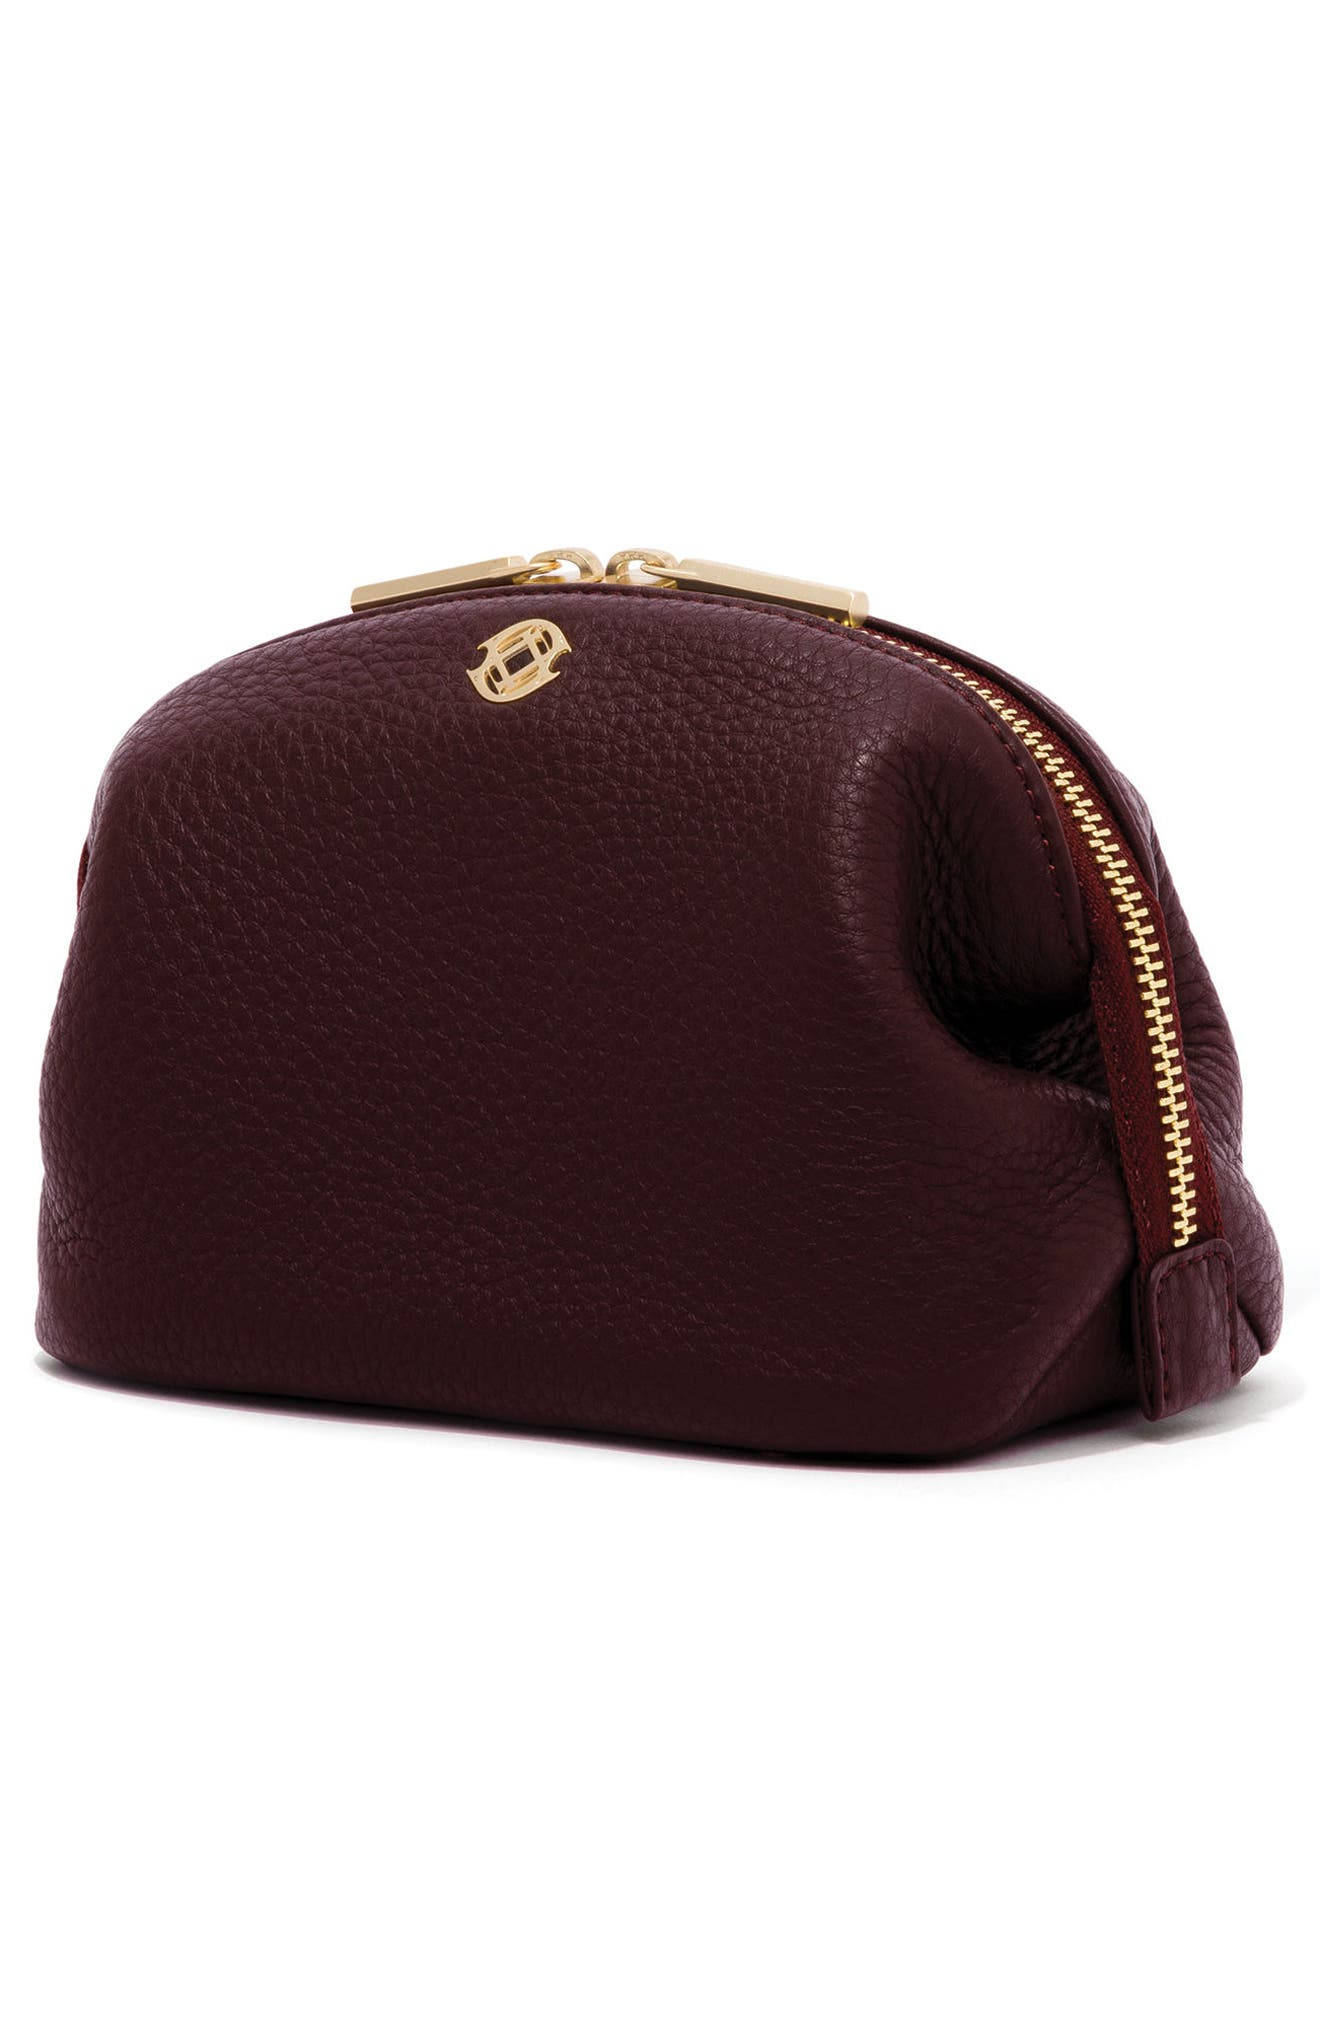 Small Lola Leather Cosmetics Pouch,                             Alternate thumbnail 8, color,